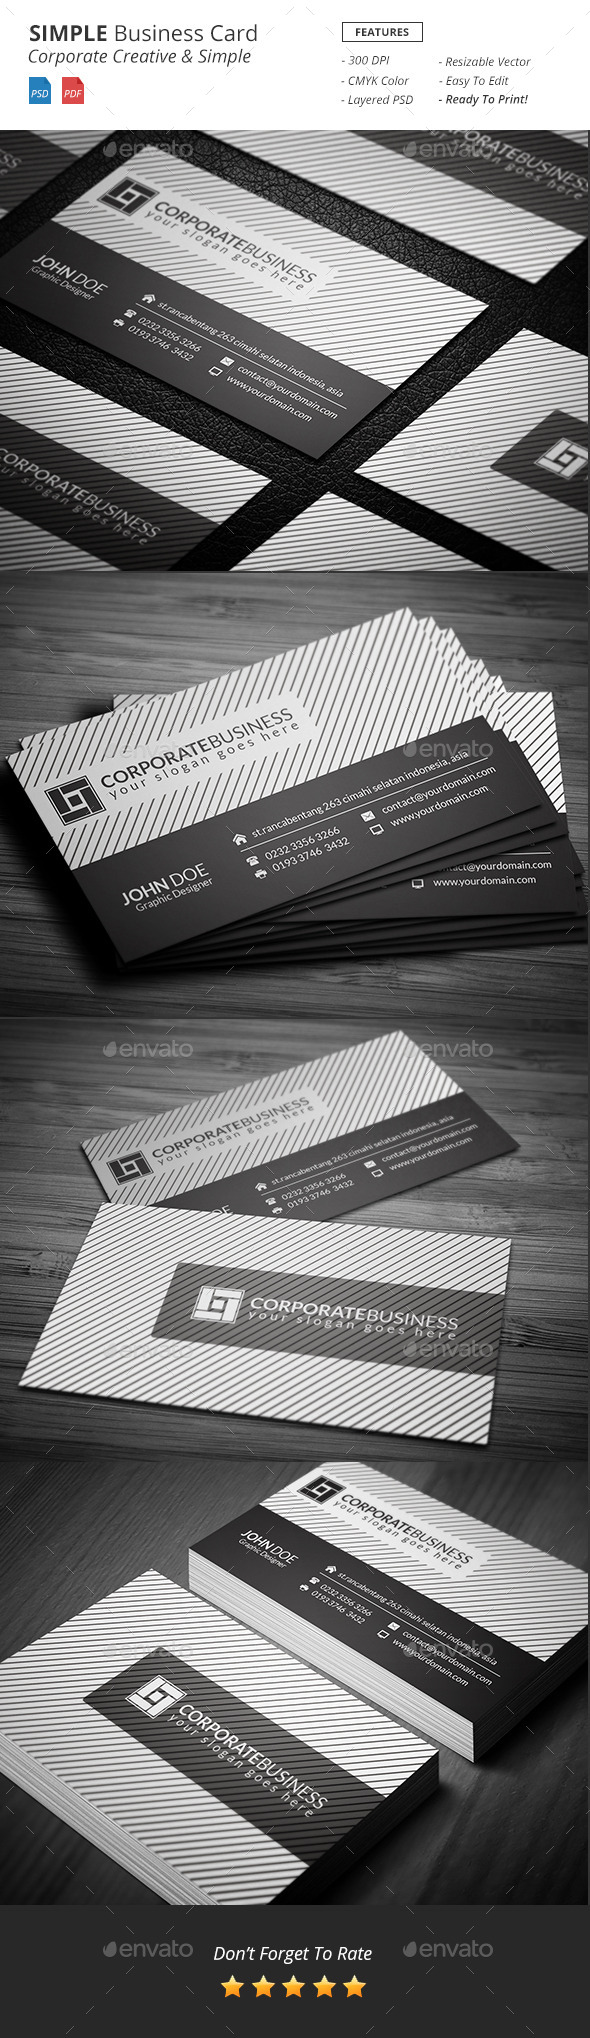 GraphicRiver Simple Corporate Business Card 11150287